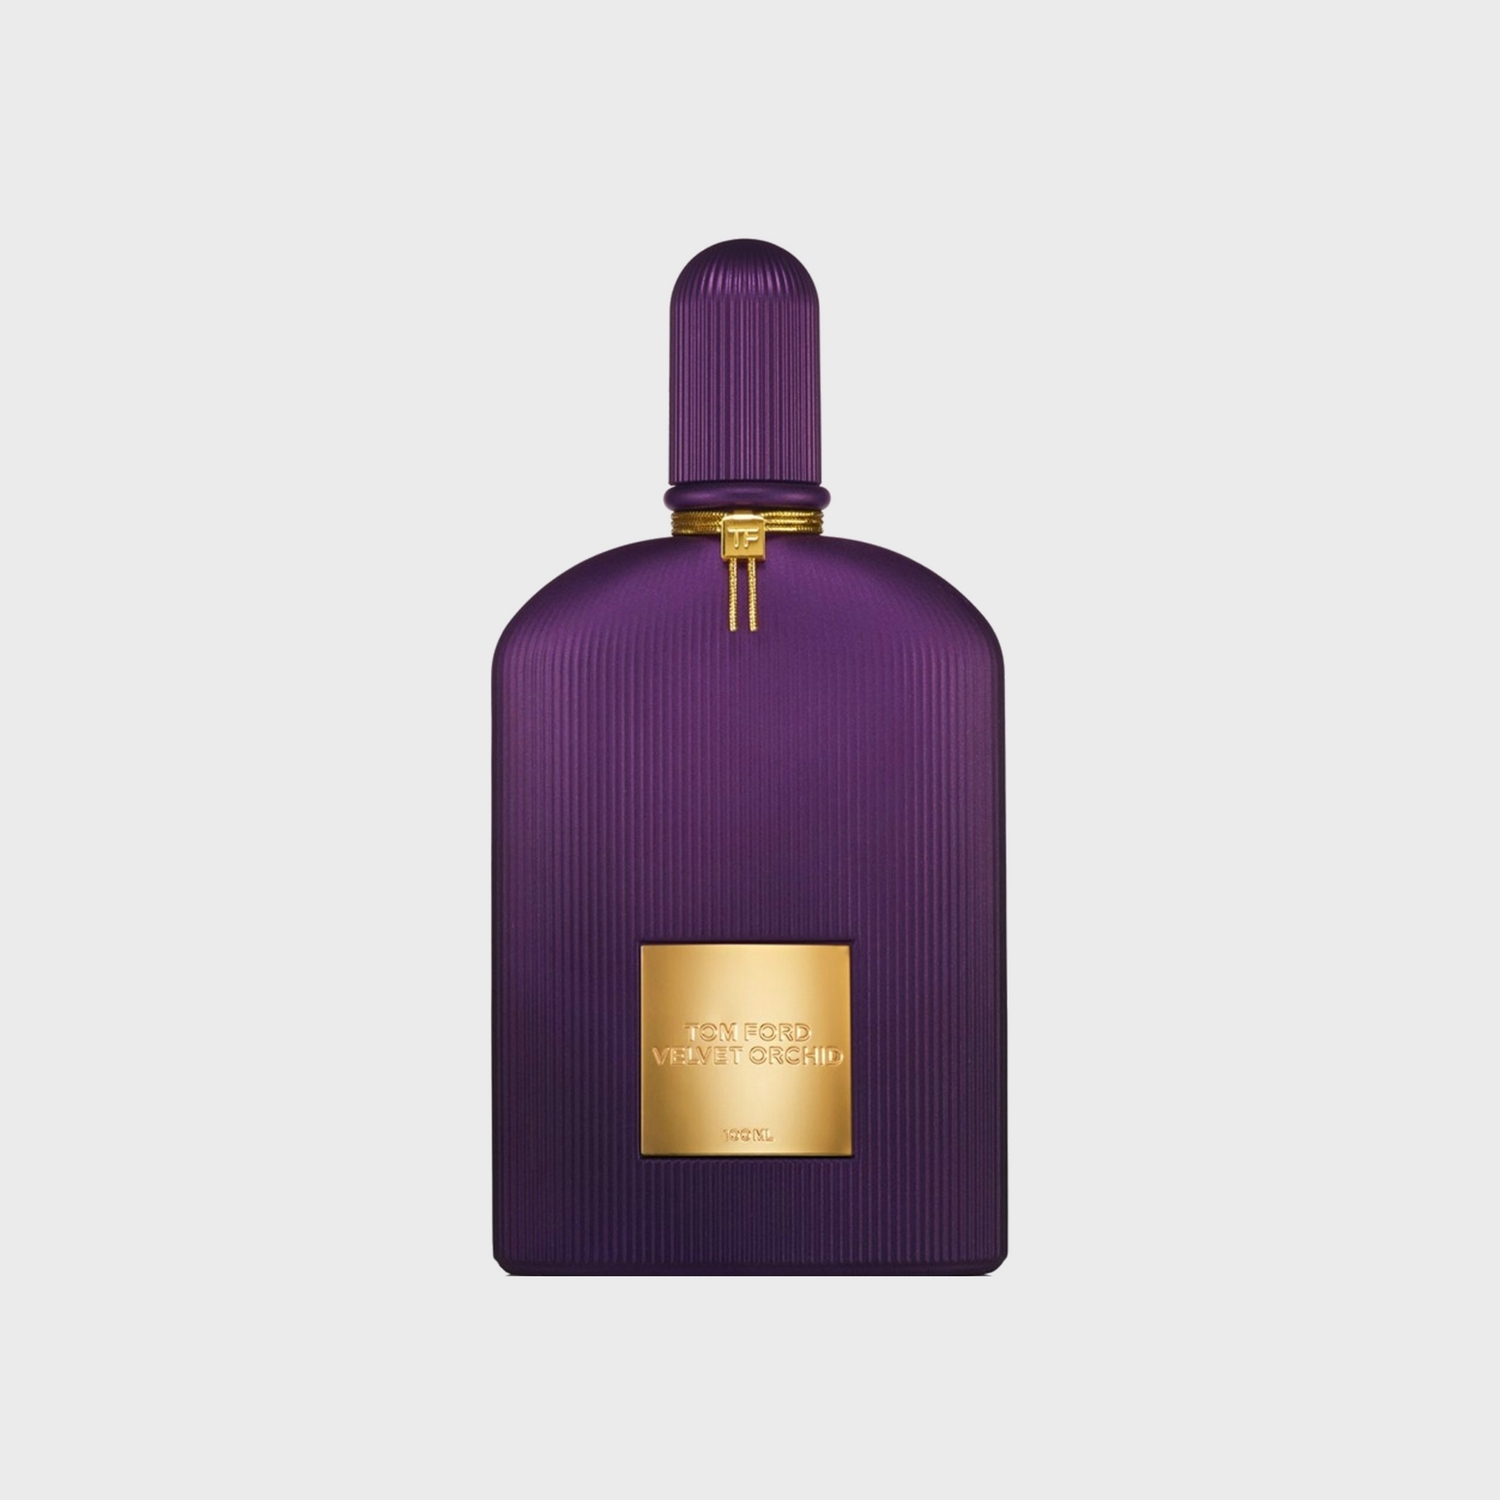 Tom Ford Velvet Orchid Lumiere - Tom Ford Perfume Review